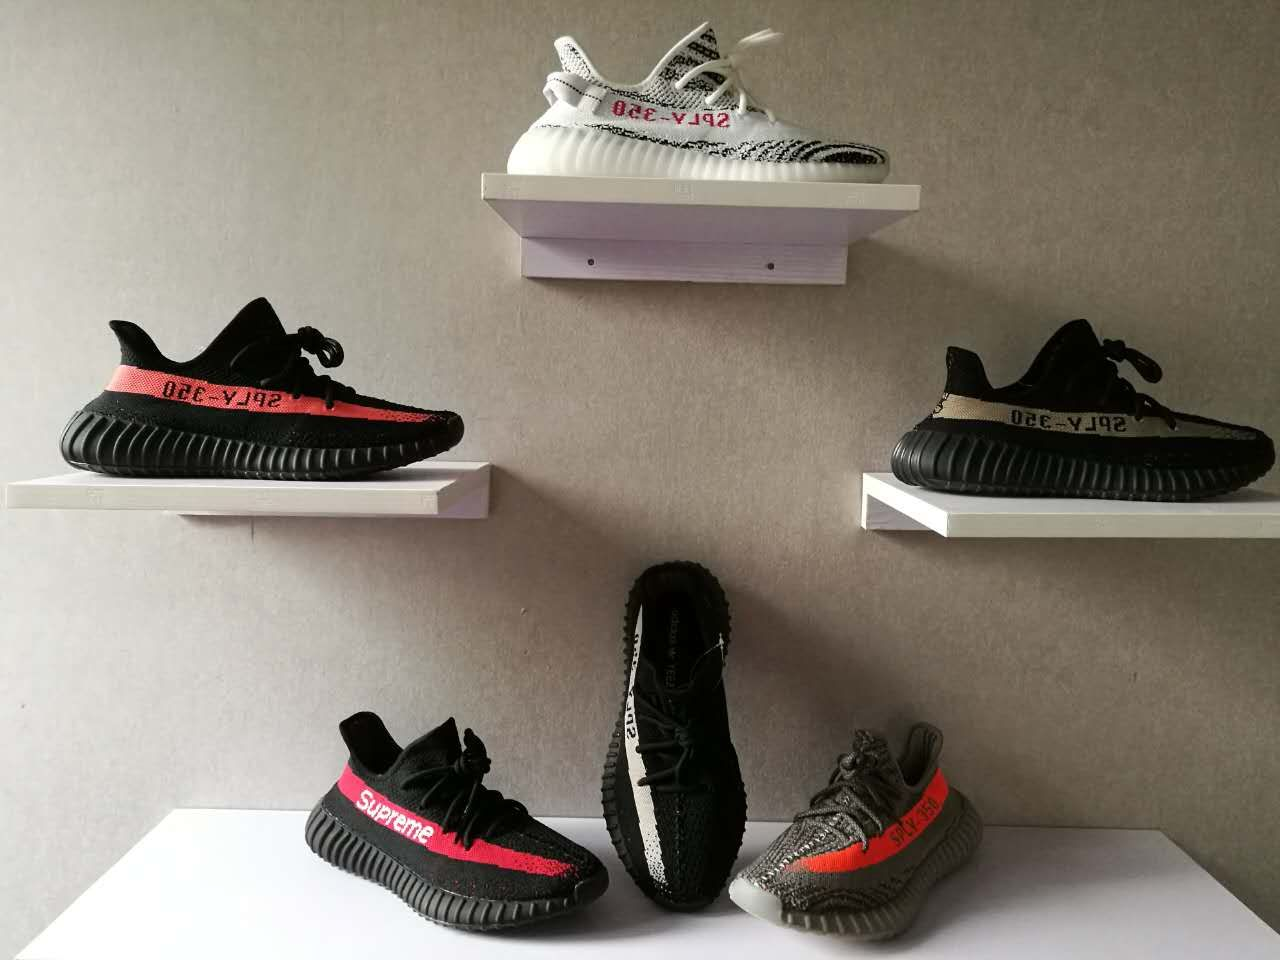 deb875ab8a2af1 Adidas Yeezy Boost 350 V2 All colour.Which one do you like